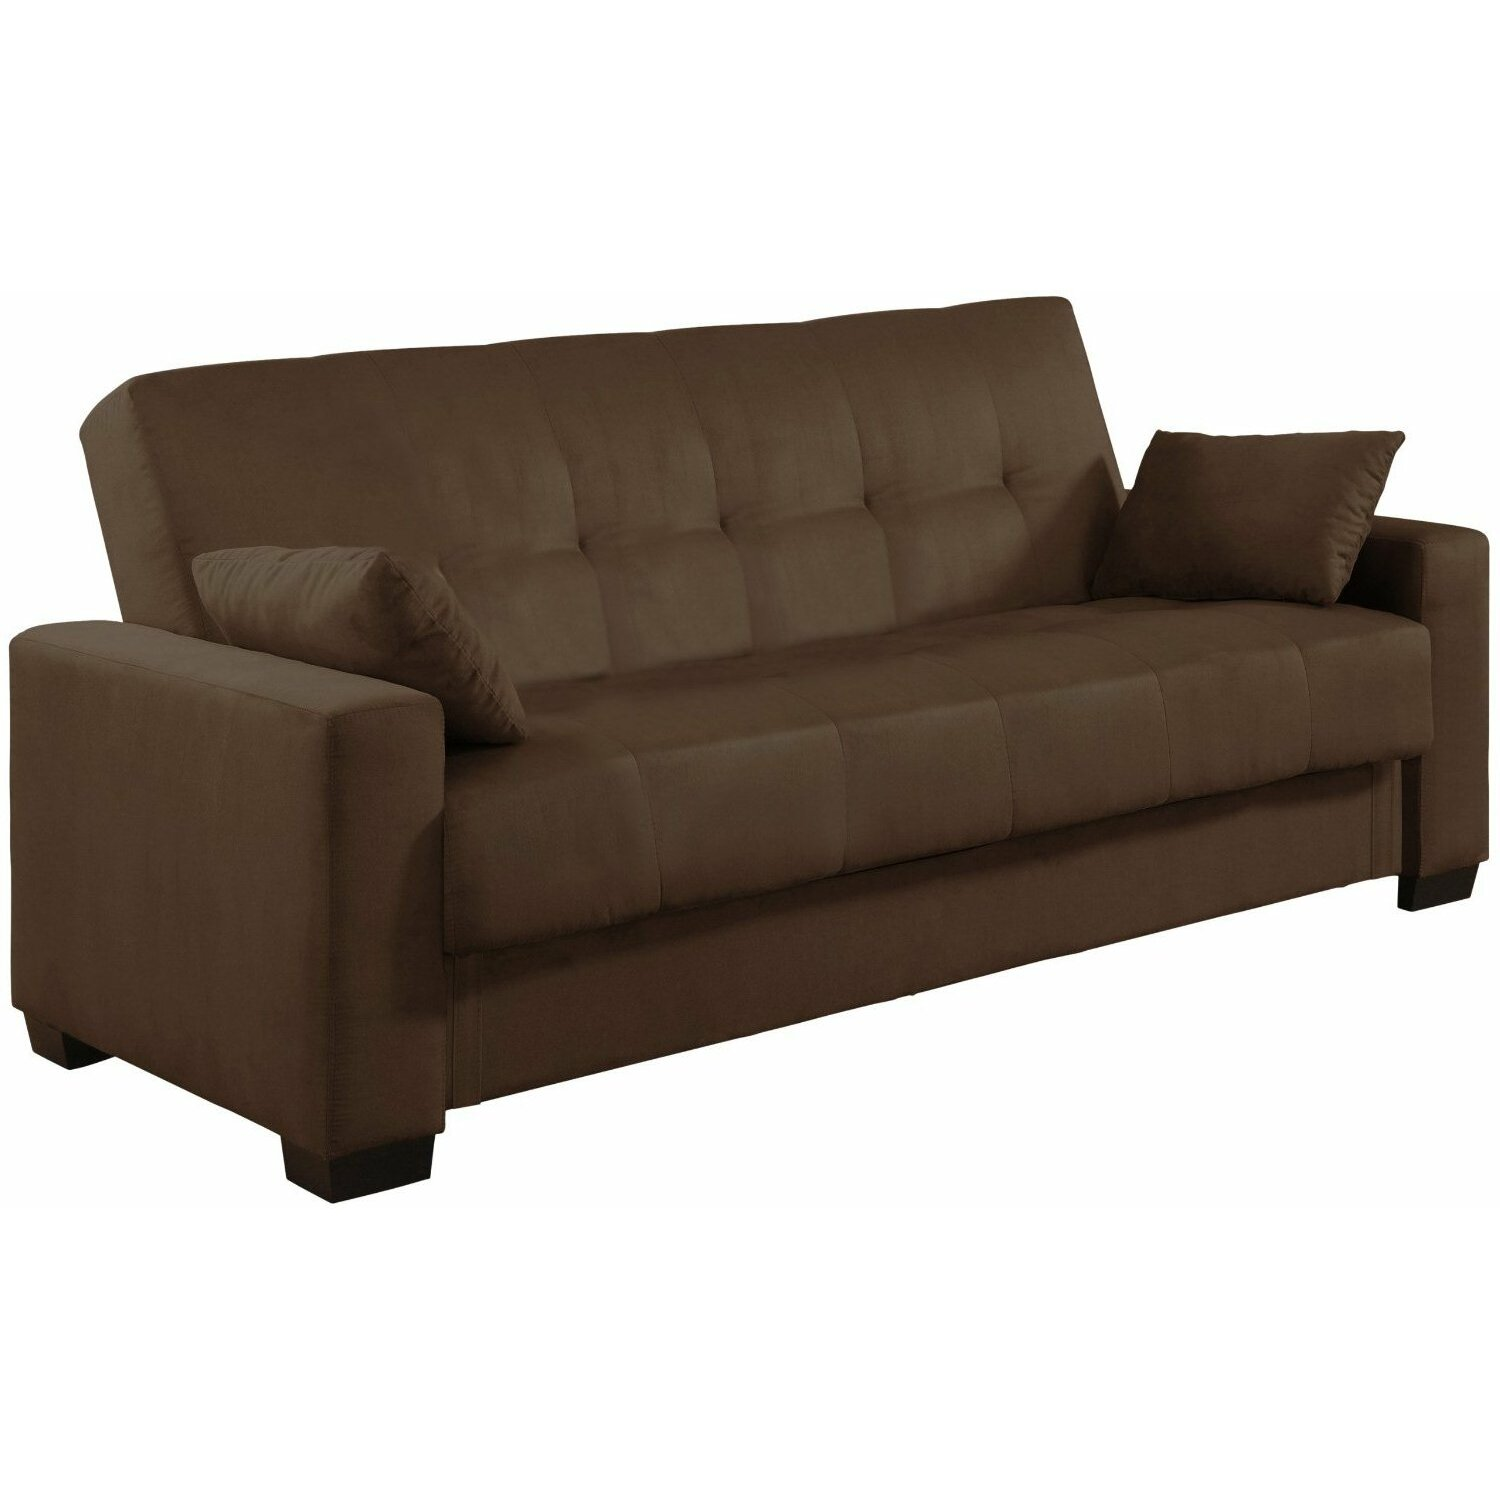 Lifestyle solutions casual convertibles sleeper sofa for Sofas convertibles